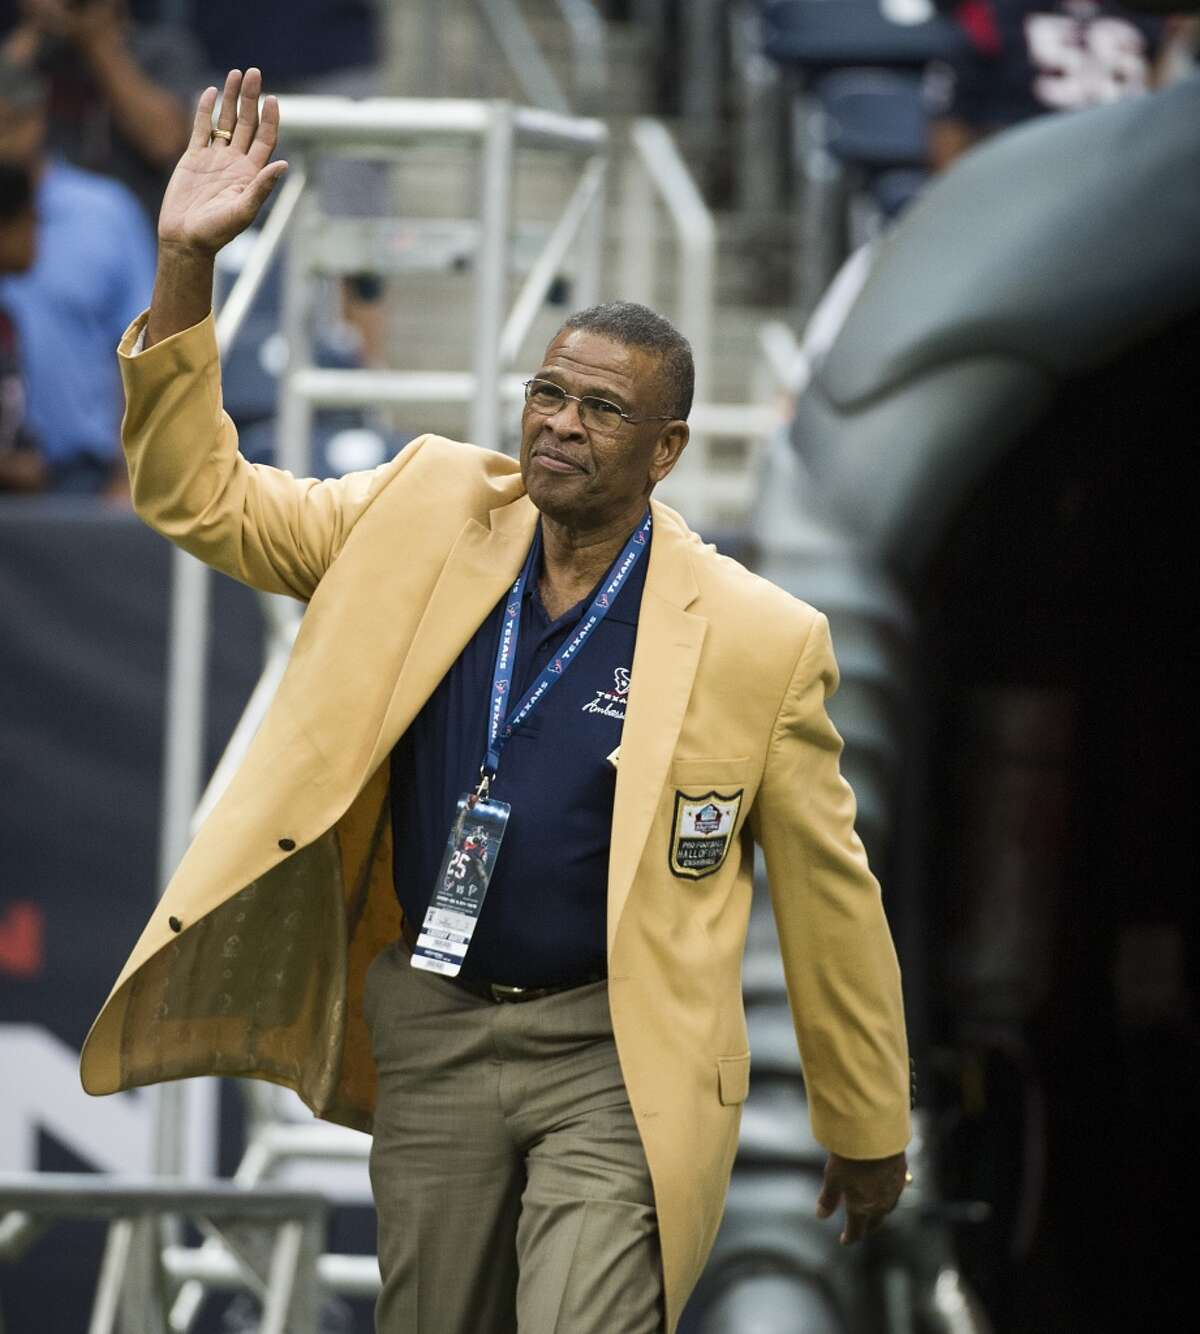 Hall of Fame defensive back Kenny Houston of the Houston Oilers is introduced before the Houston Texans face the Atlanta Falcons in a preseason football game on Saturday, Aug. 16, 2014, in Houston. ( Smiley N. Pool / Houston Chronicle )